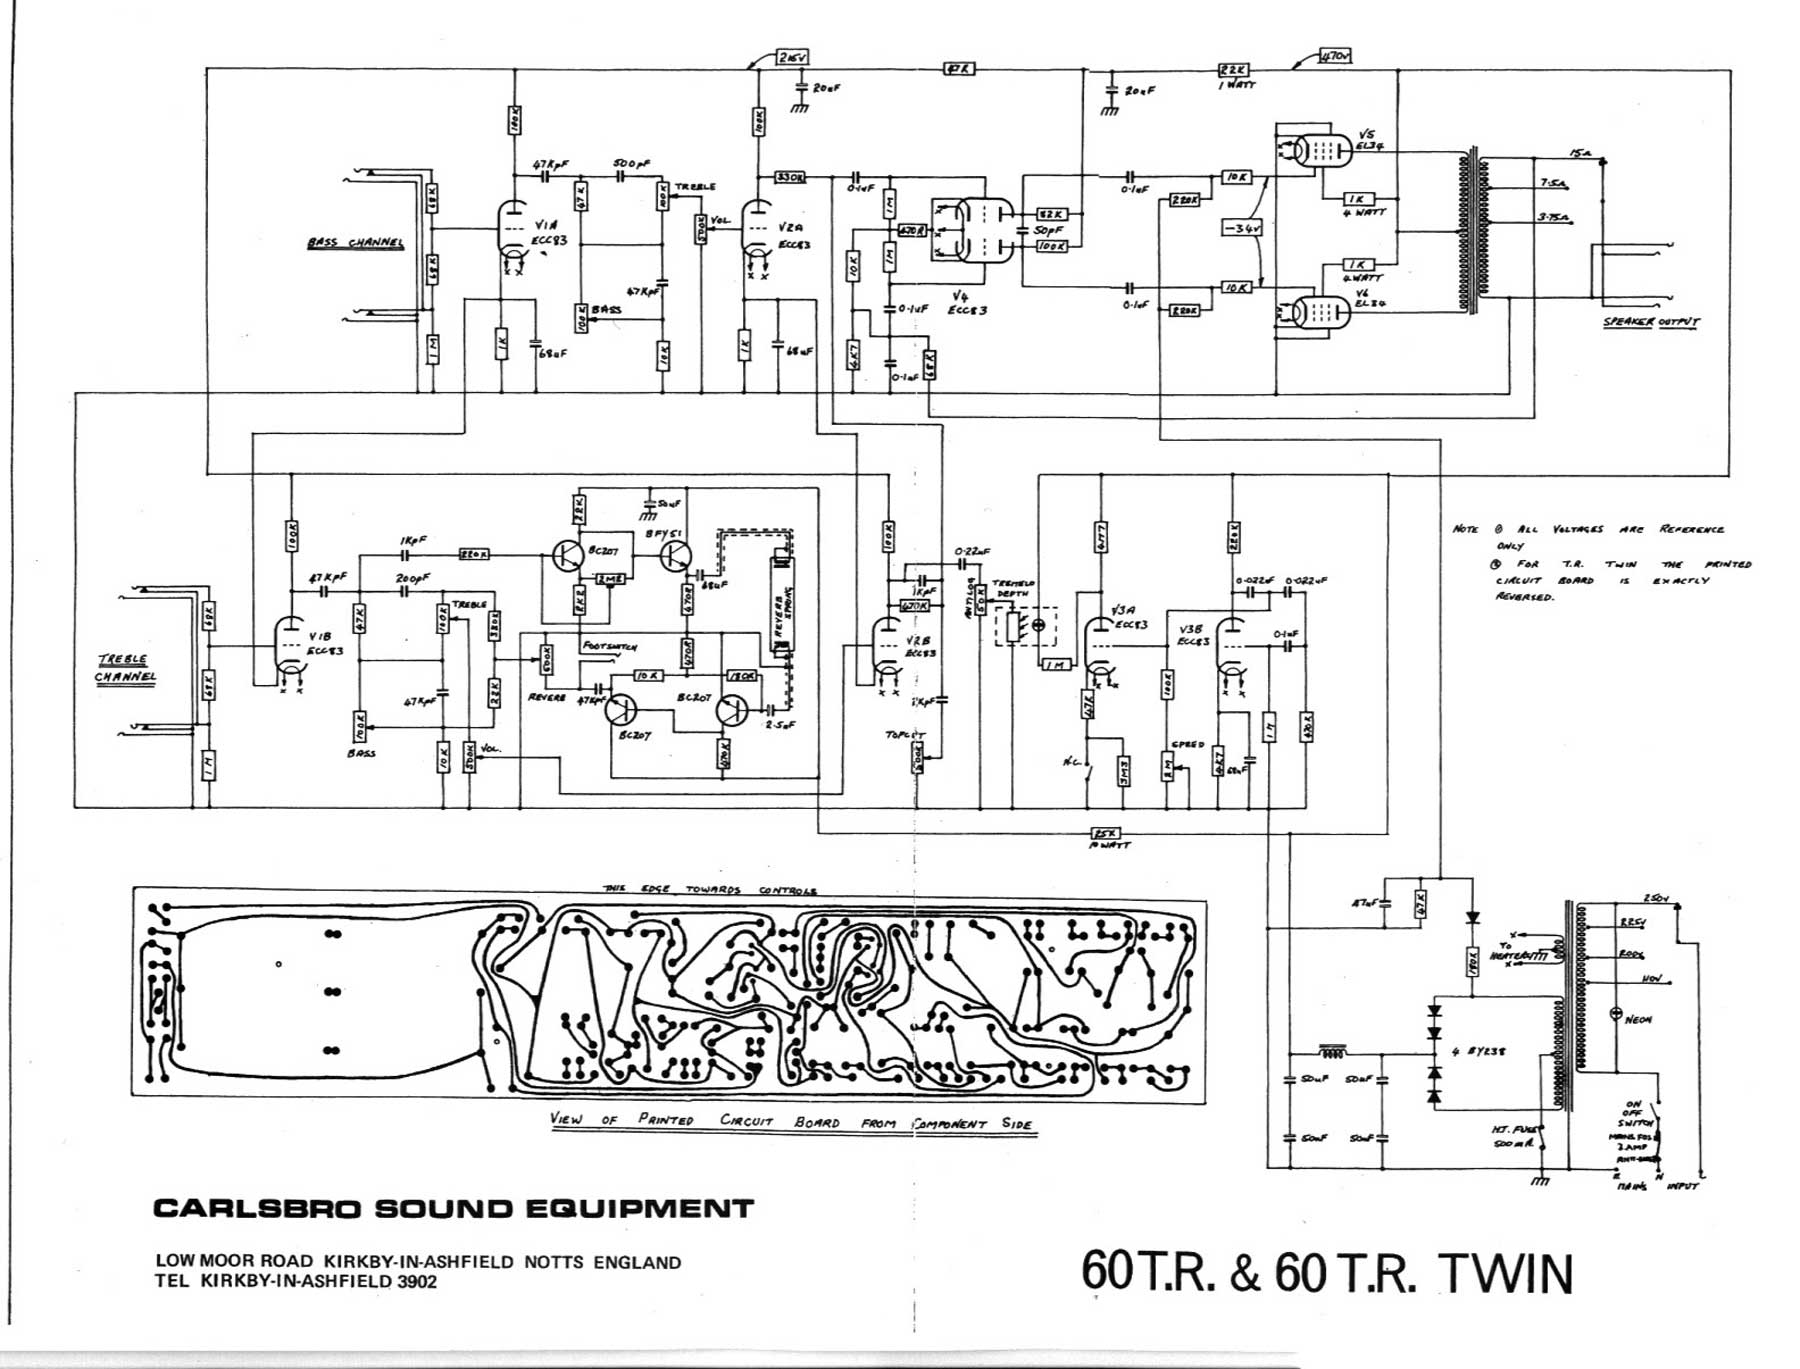 Kx 500 Wiring Diagram Free Picture Schematic Carlsbro 60 T R And 60 T R Twin Amp Schematic